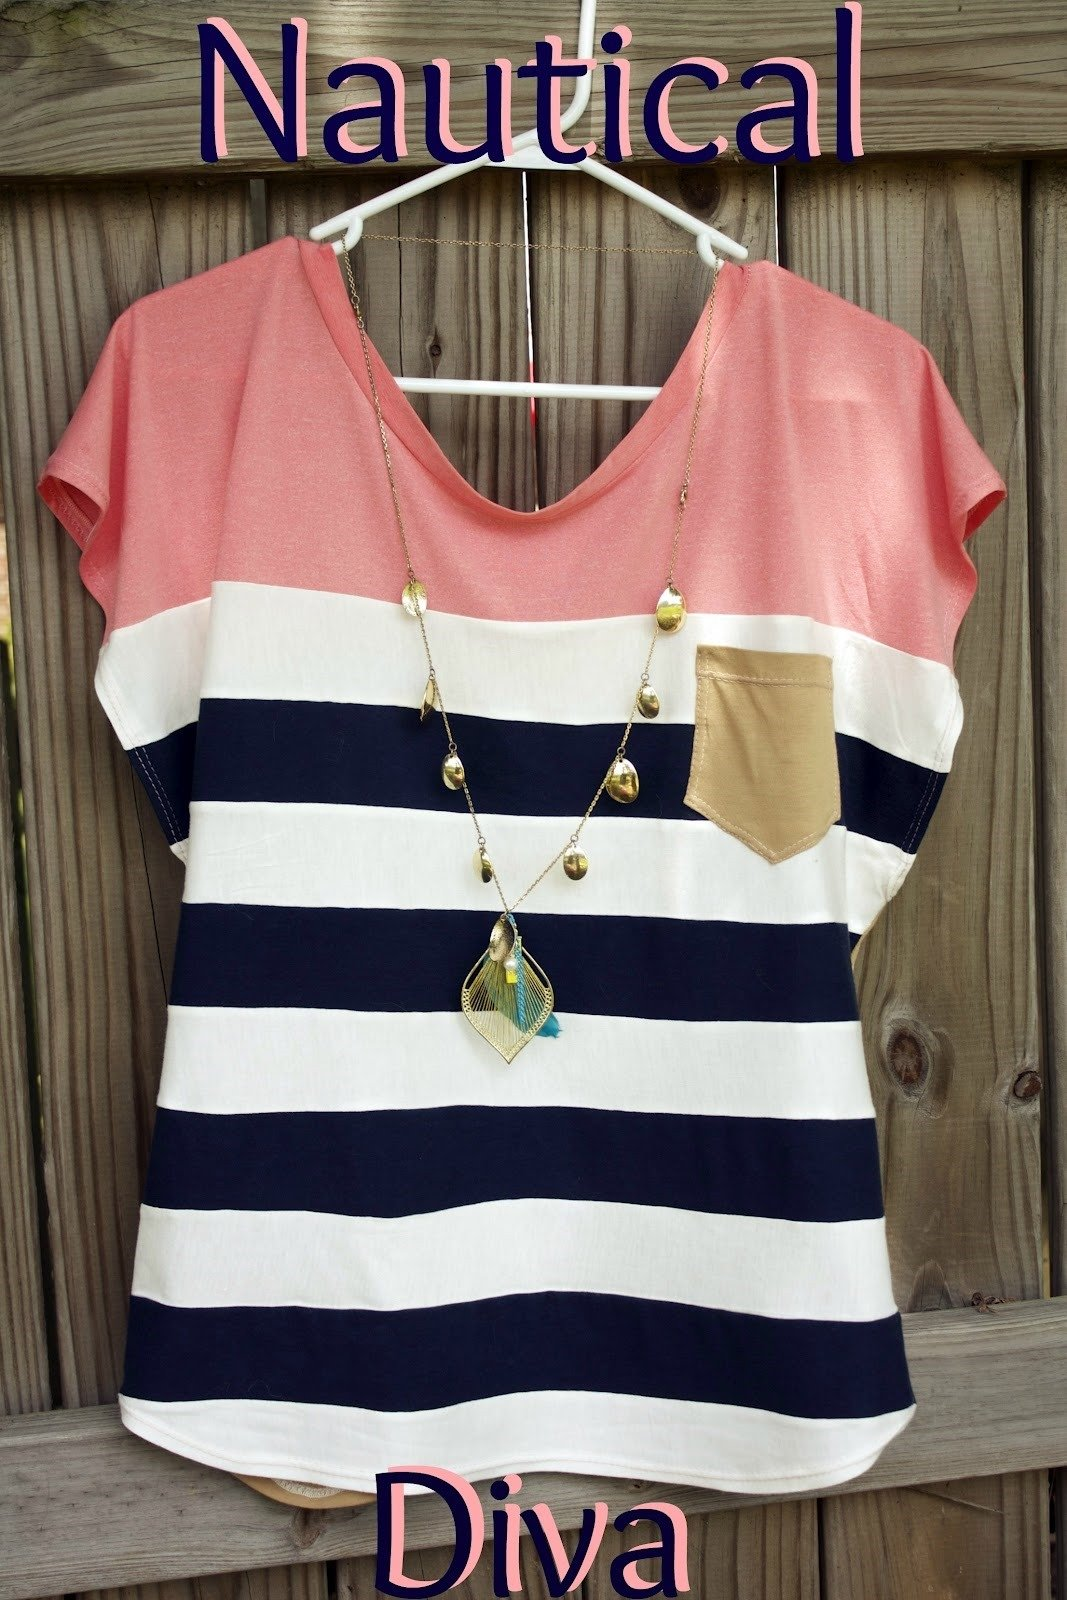 Nautical Womens Top - Free Sewing Patterns - FineCraftGuild.com